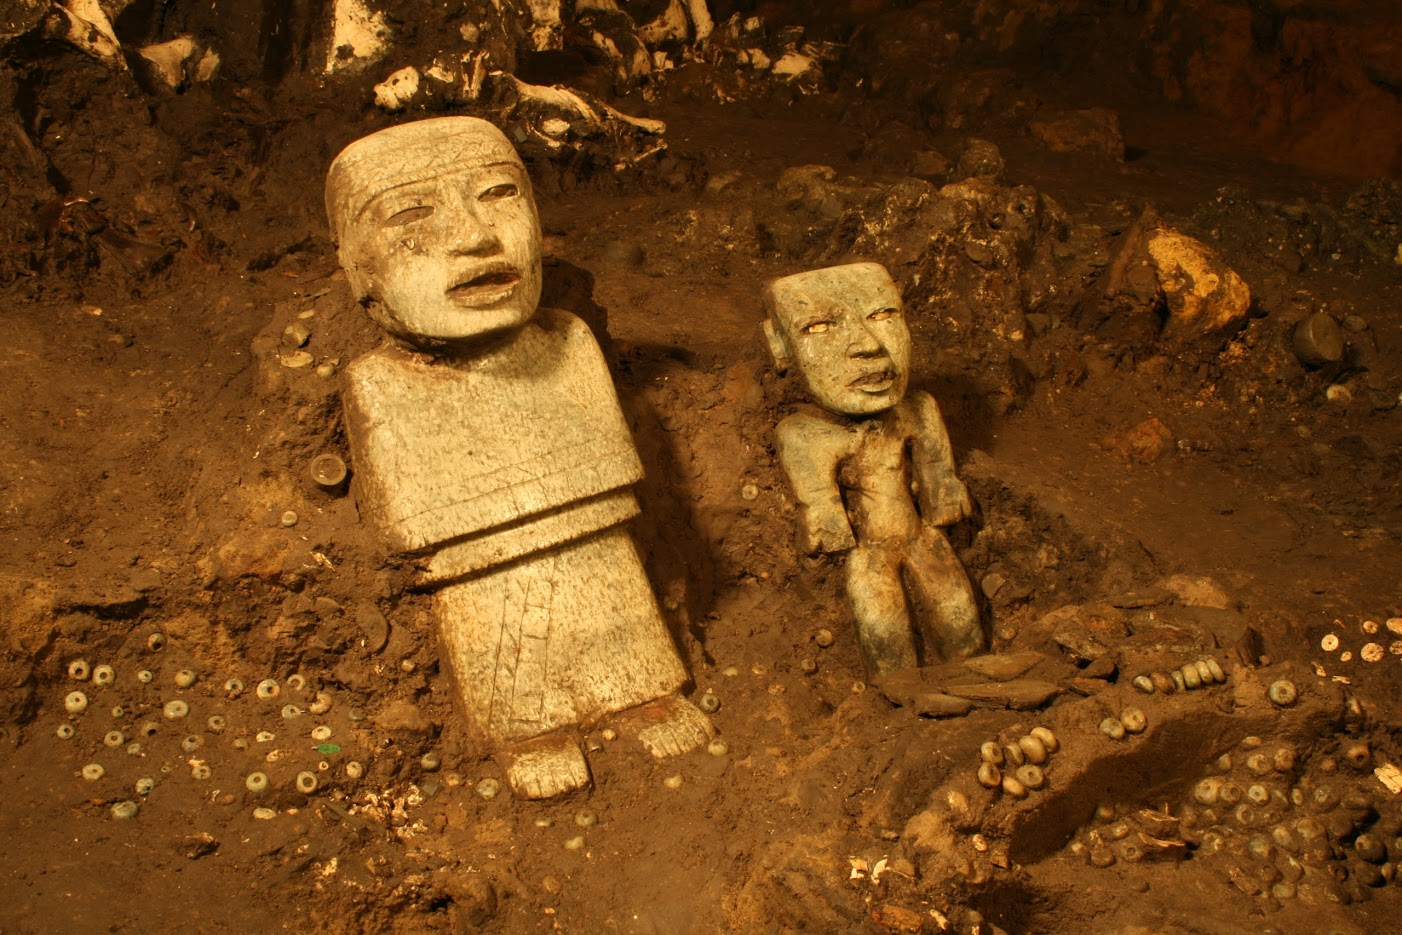 Detail of two standing anthropomorphic sculptures discovered near the terminus of the tunnel beneath the Ciudadela and the Feathered Serpent Pyramid.